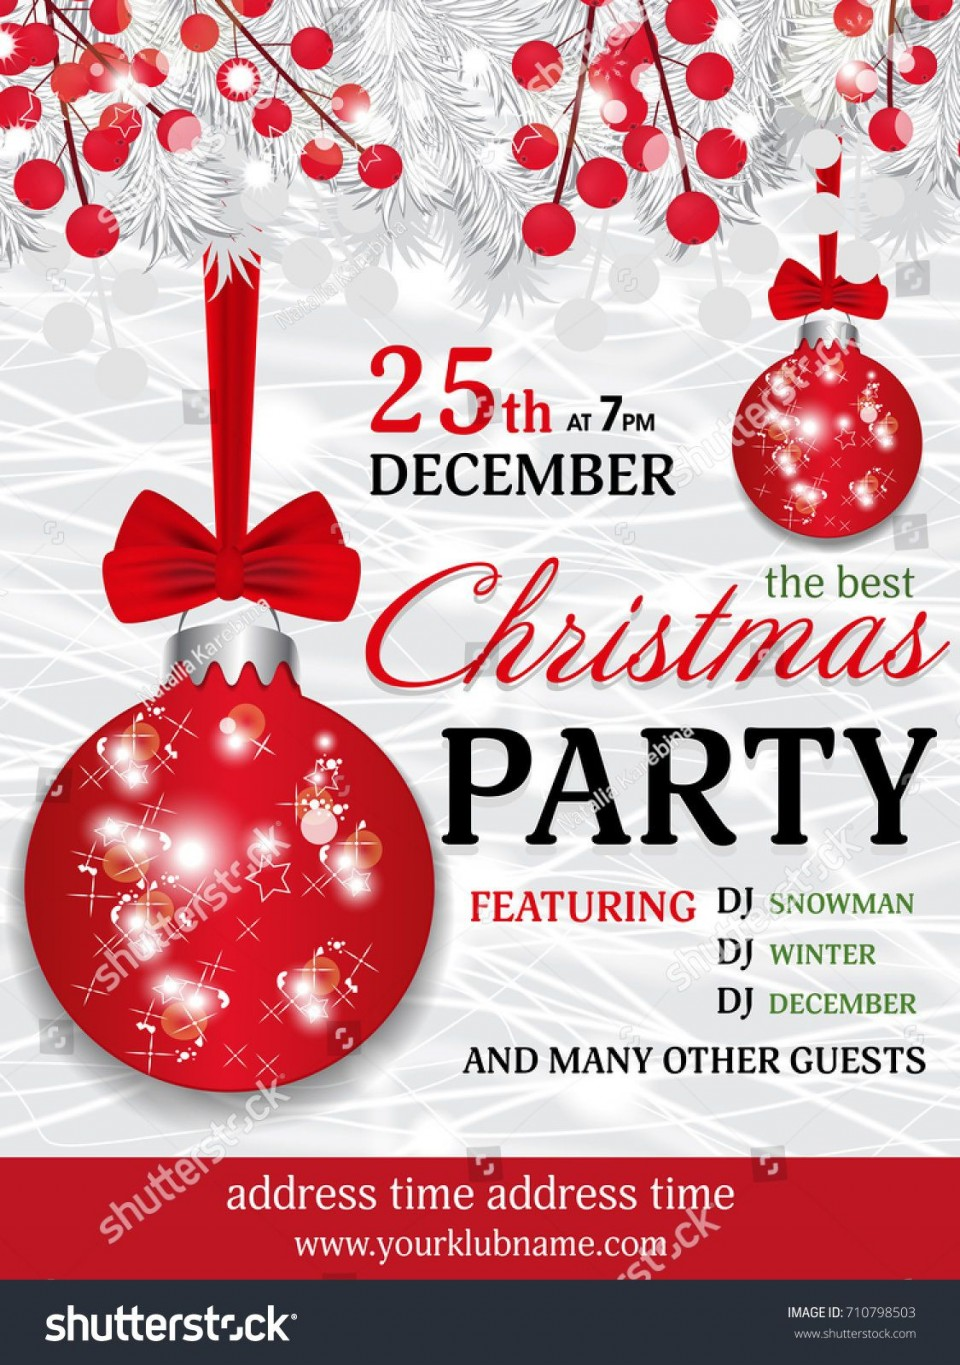 009 Wondrou Christma Party Invitation Template Design  Holiday Download Free Psd960